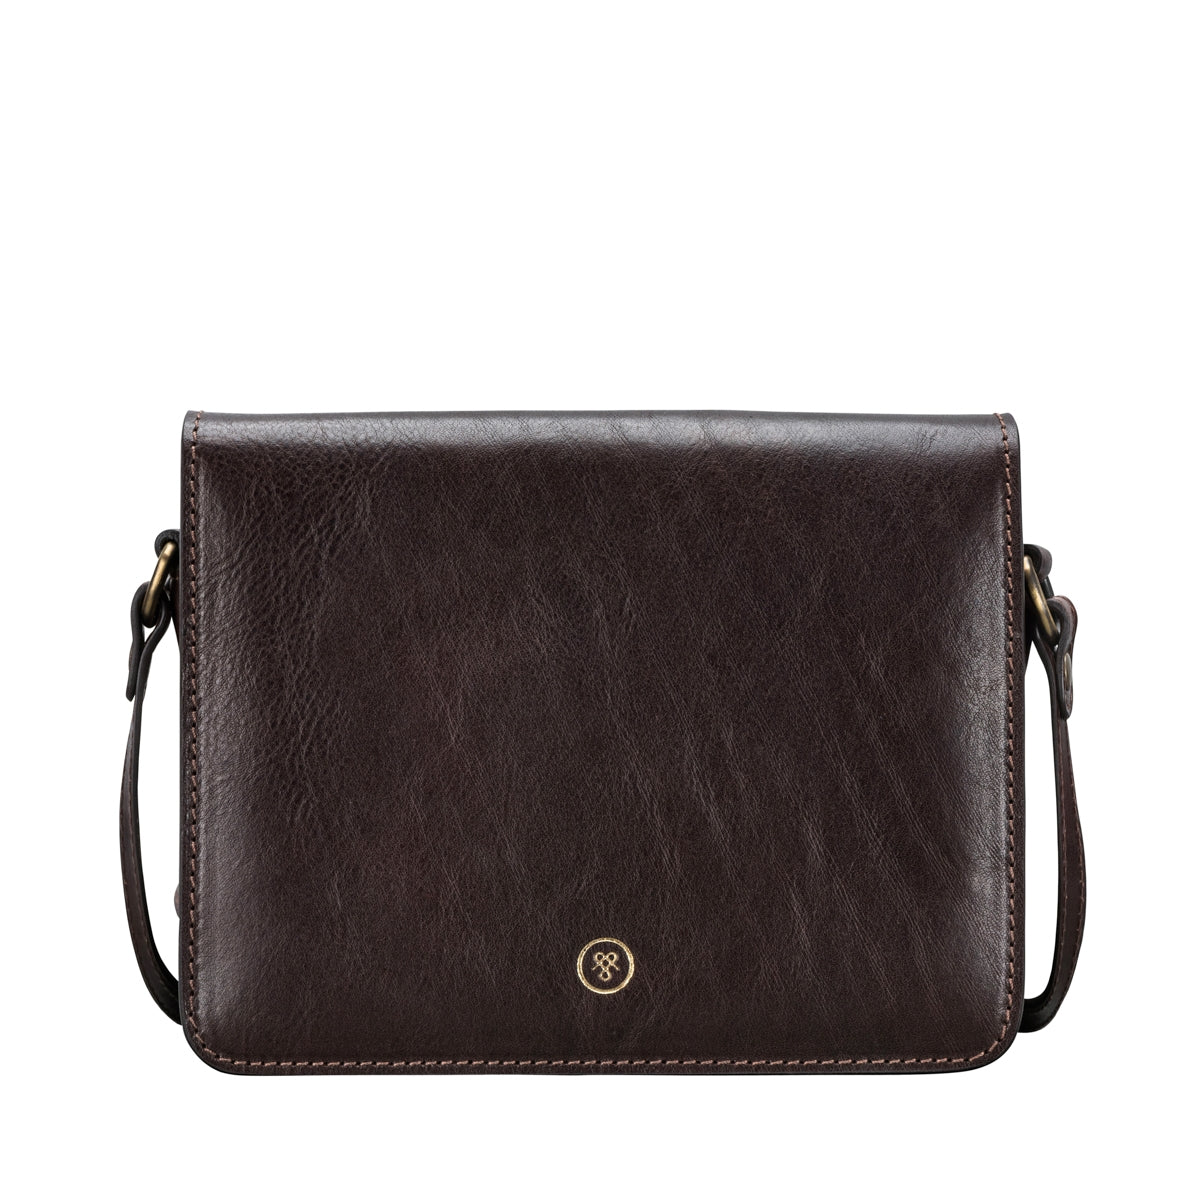 Image 1 of the 'Lucca' Small Dark Chocolate Veg-Tanned Leather Handbag